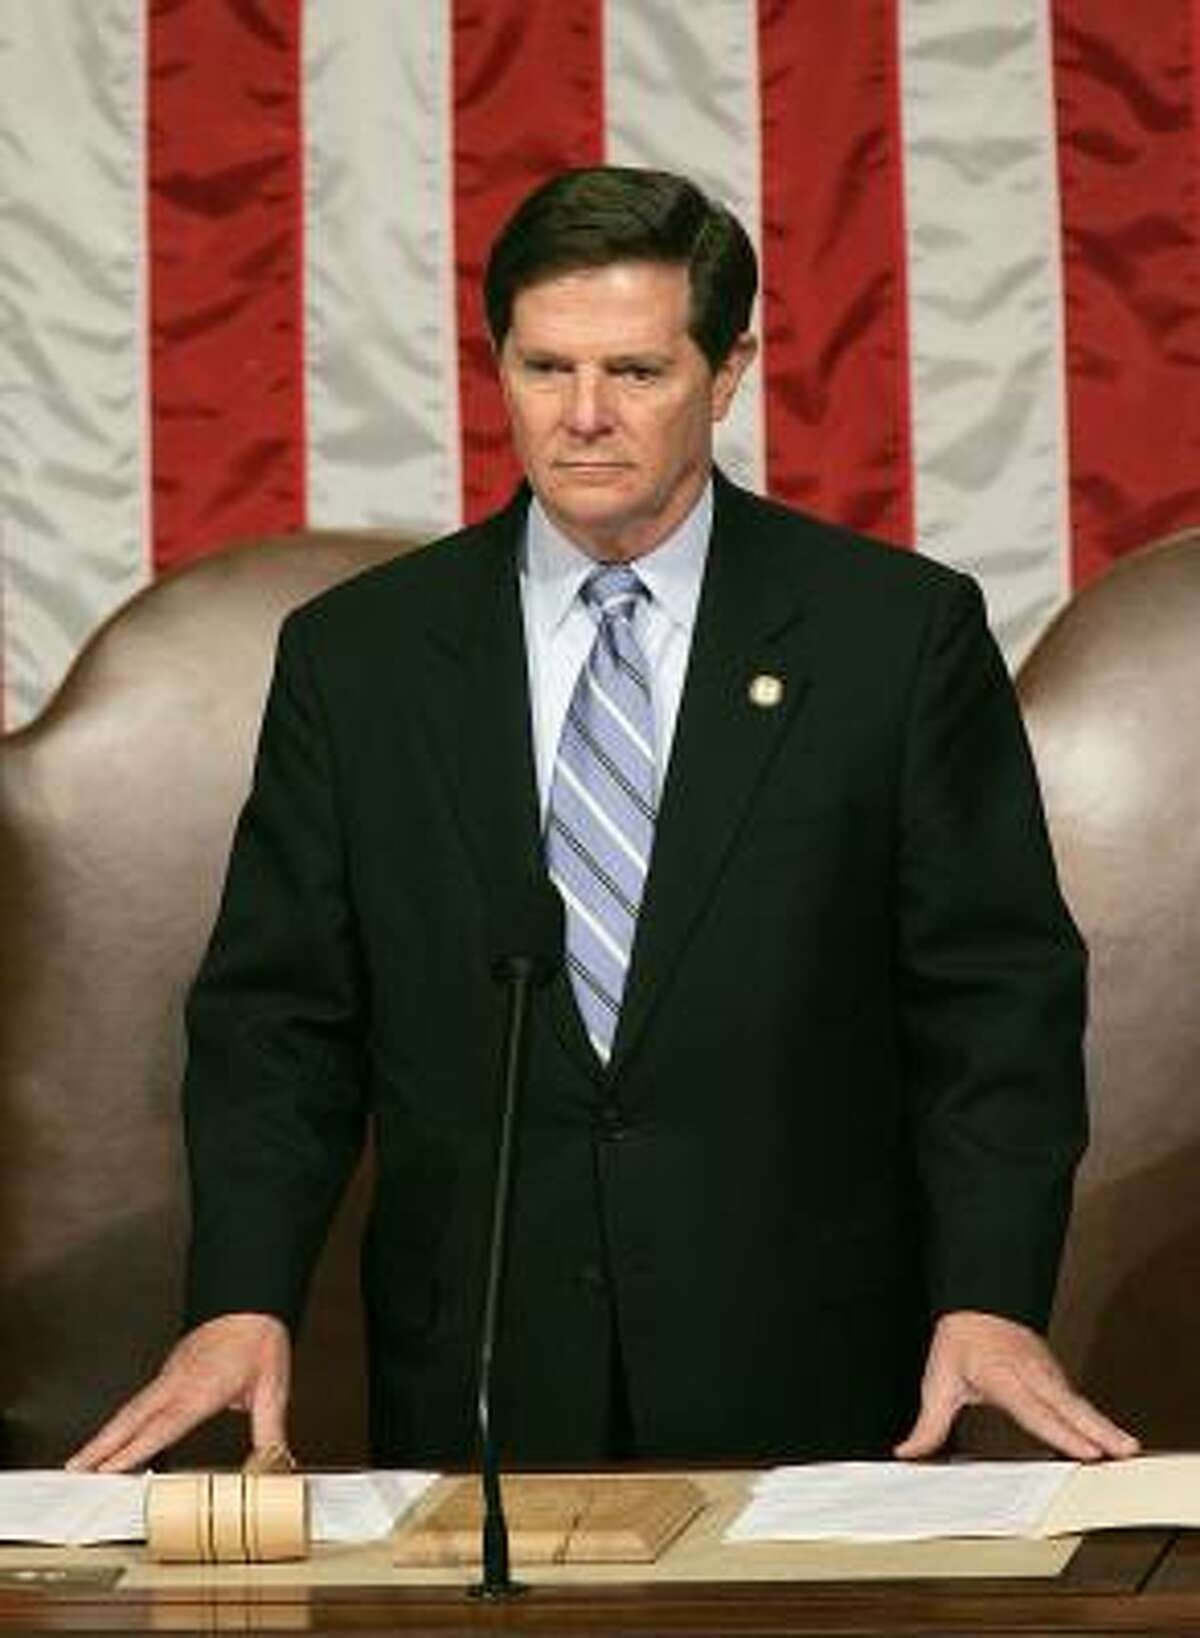 Tom DeLay has been mostly out of public view since resigning from Congress, except for an appearance on ABC's hit television show Dancing With the Stars.